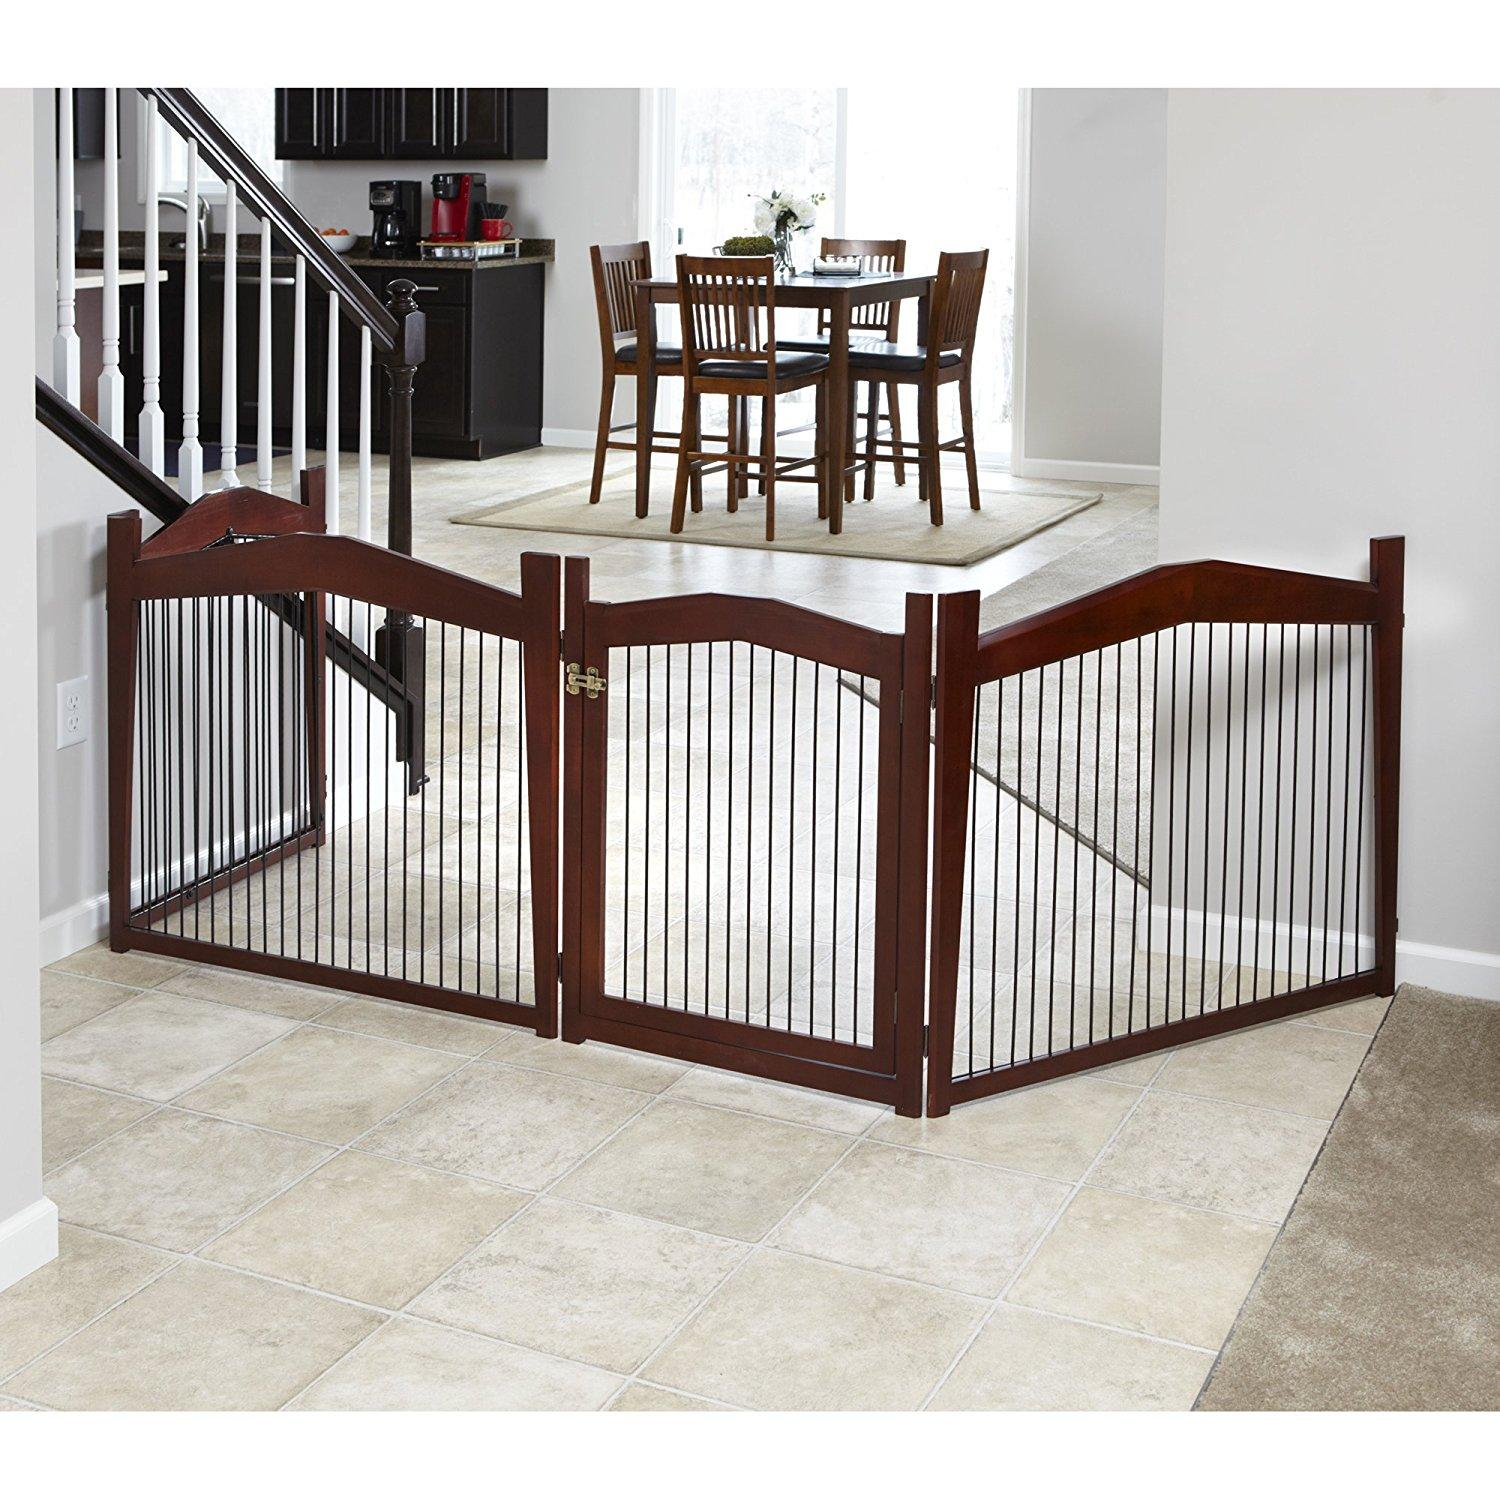 Merry Pet 2-in-1 Configurable Pet Crate and Gate, Brown, Large